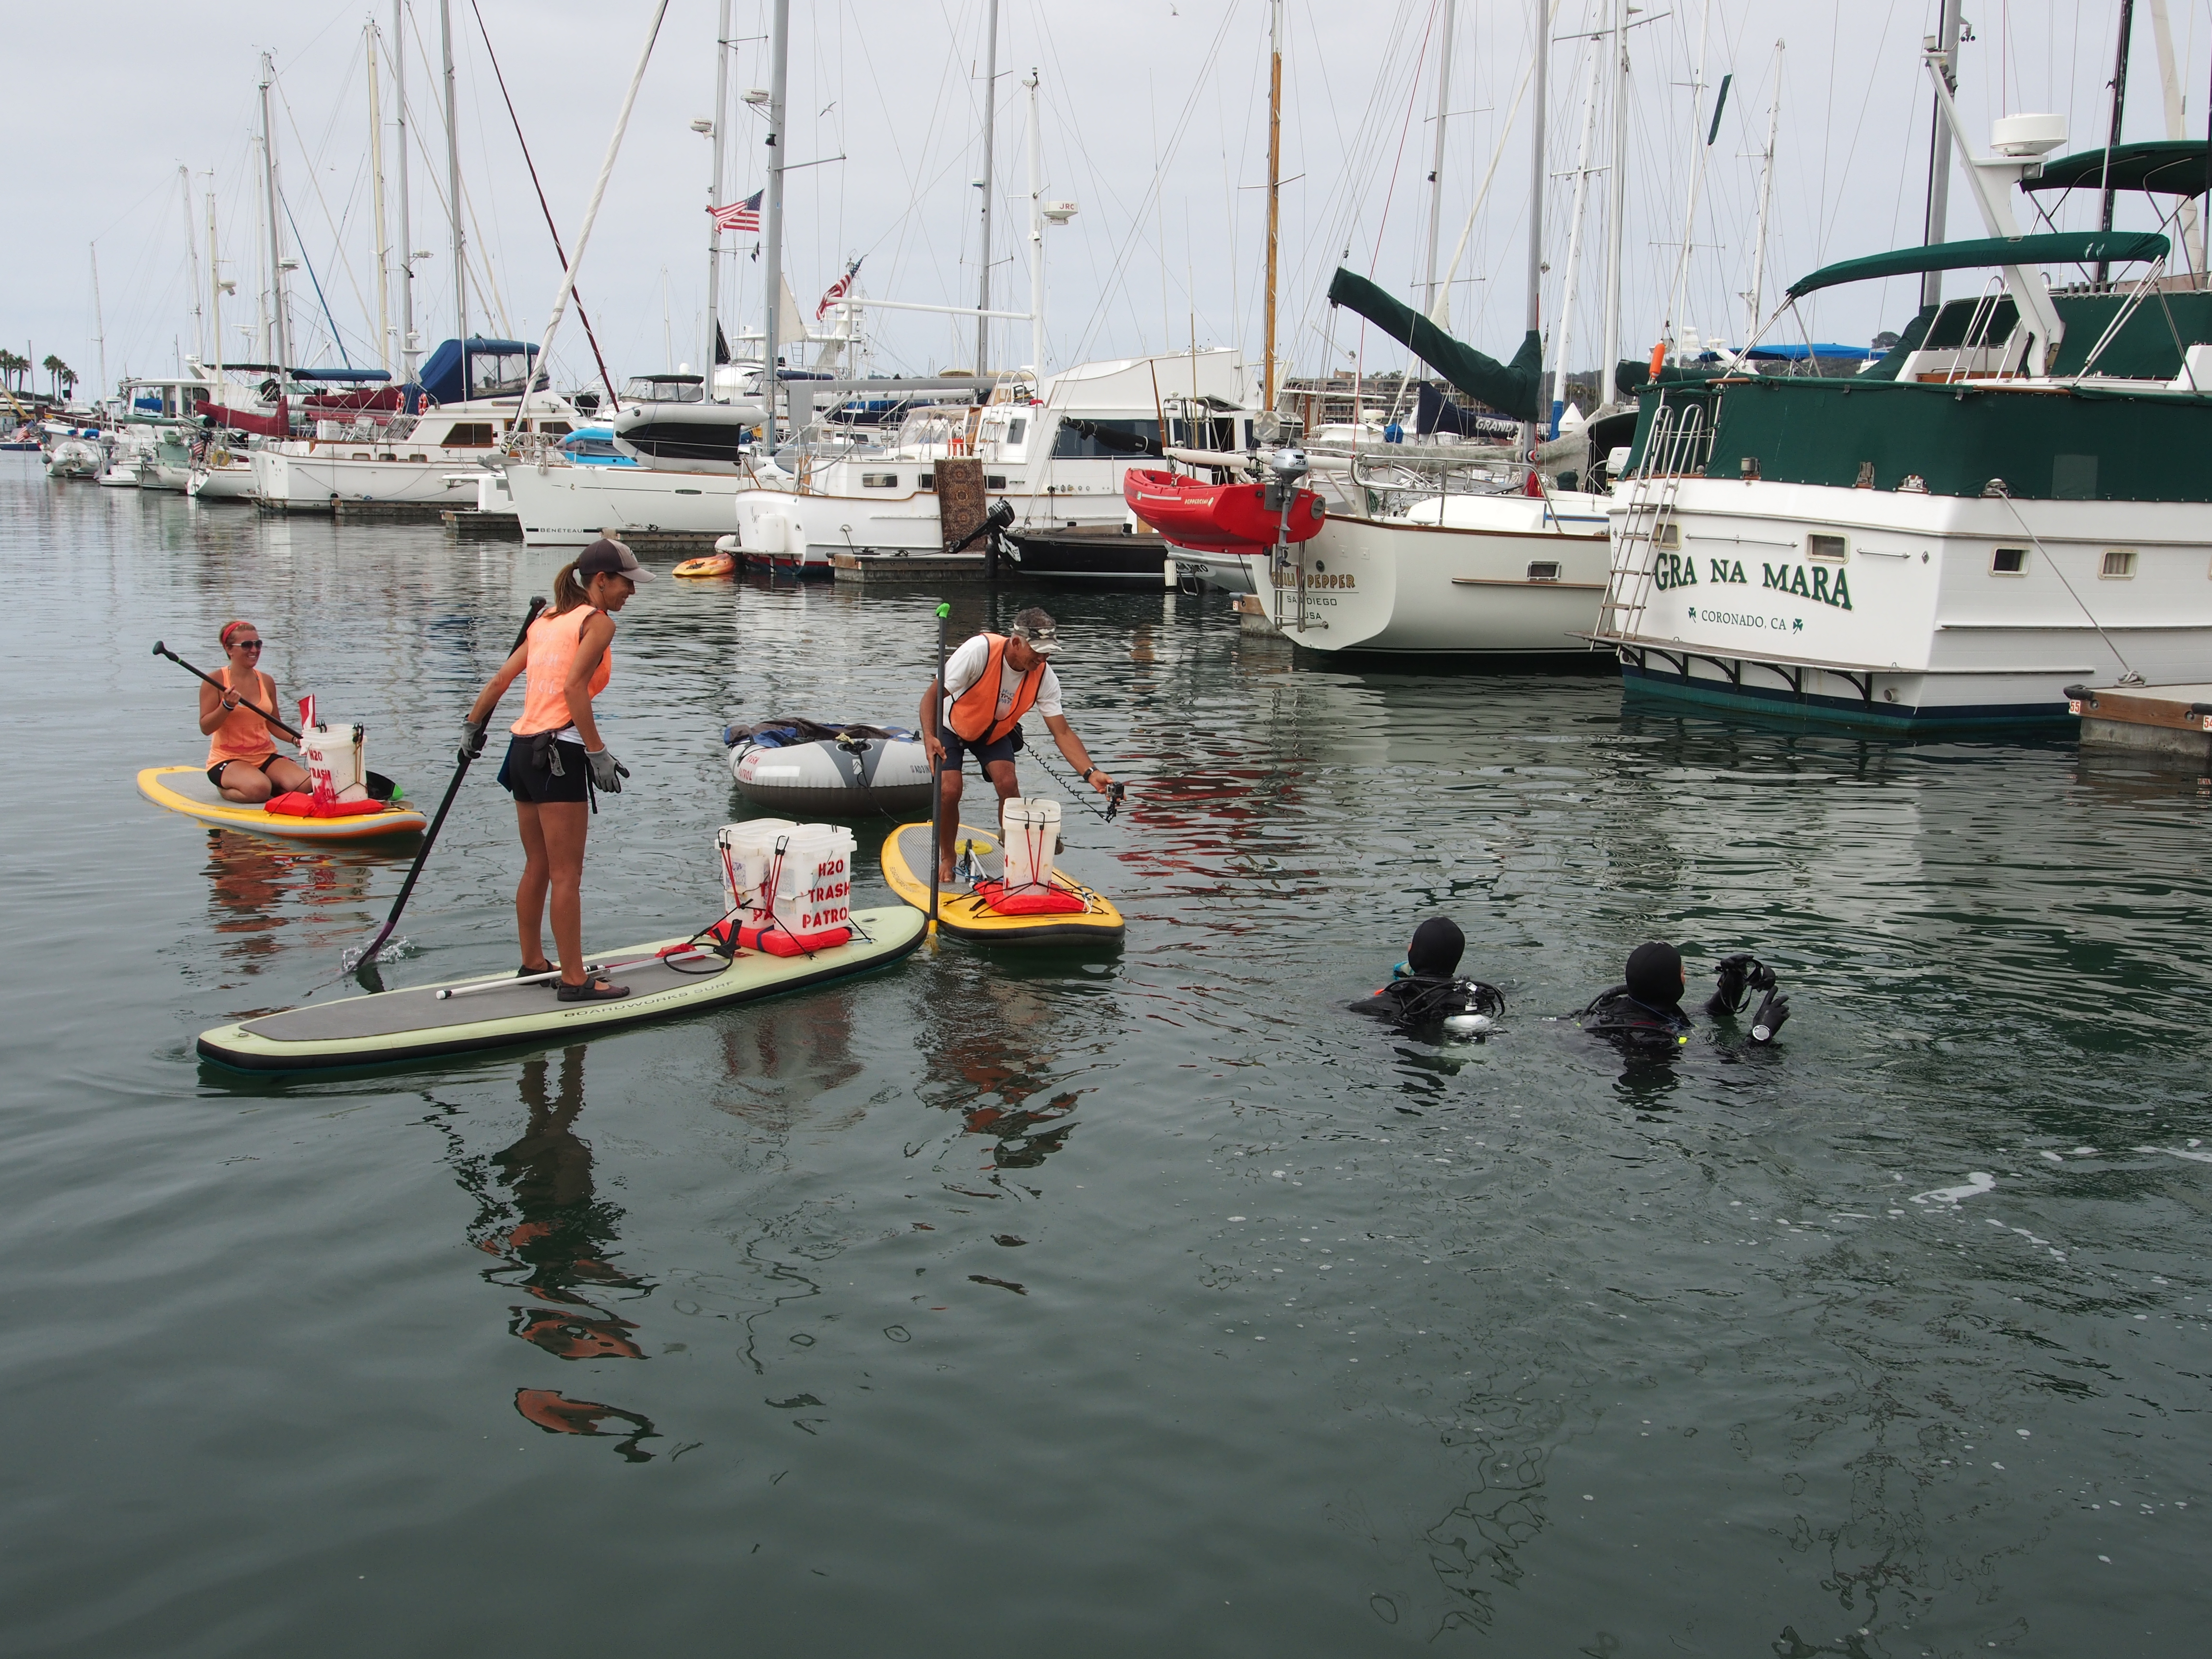 Sun Harbor Marina rid of underwater debris during volunteer cleanup